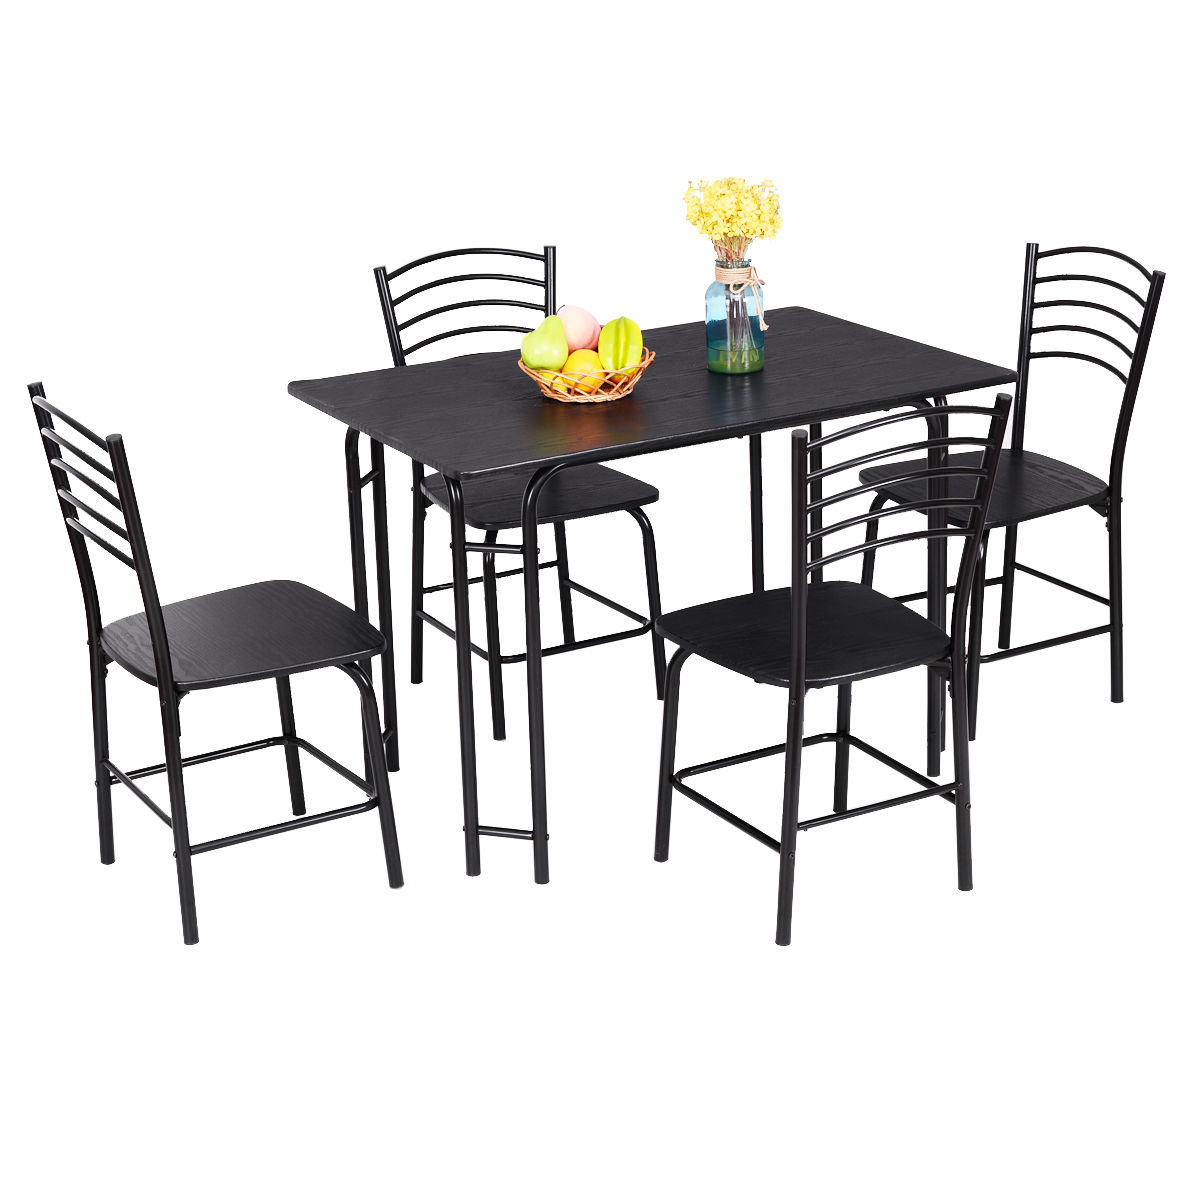 Ephraim 5 Piece Dining Set Pertaining To Most Popular Lightle 5 Piece Breakfast Nook Dining Sets (Image 9 of 20)